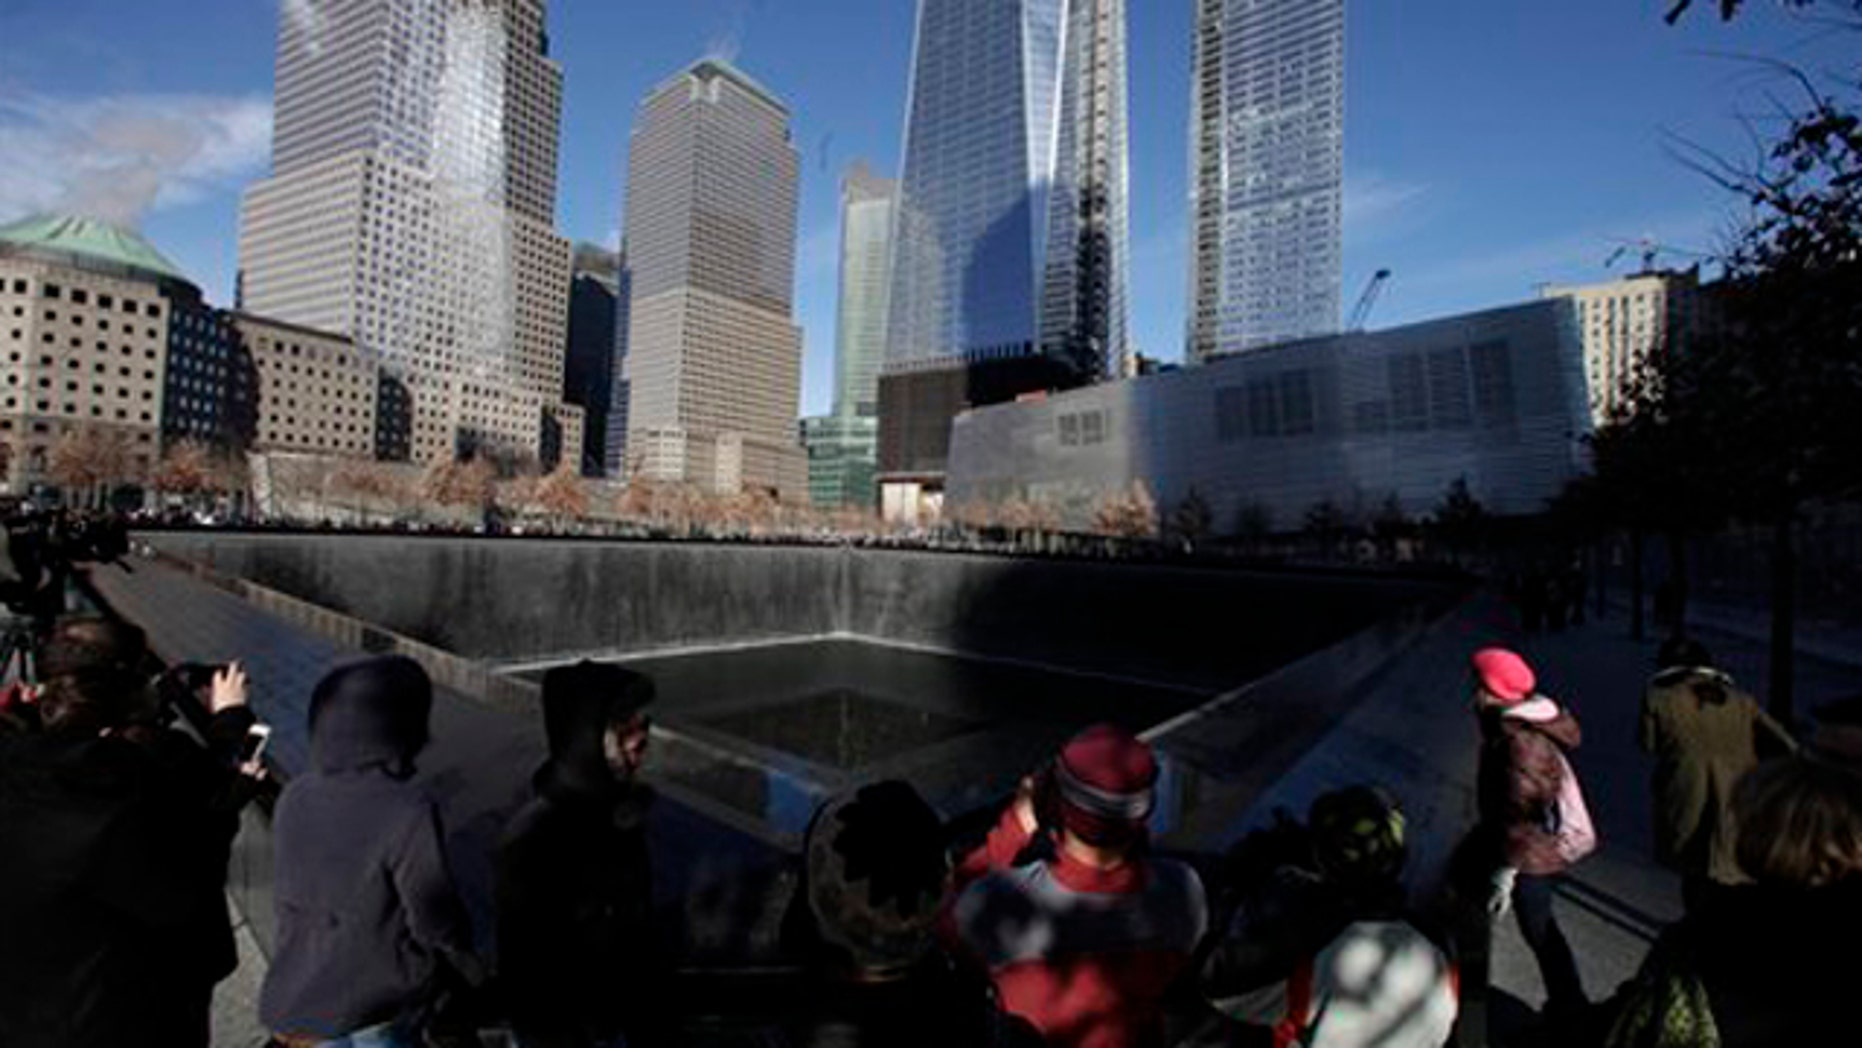 December 29, 2011: Visitors walk around the National September 11 Memorial.